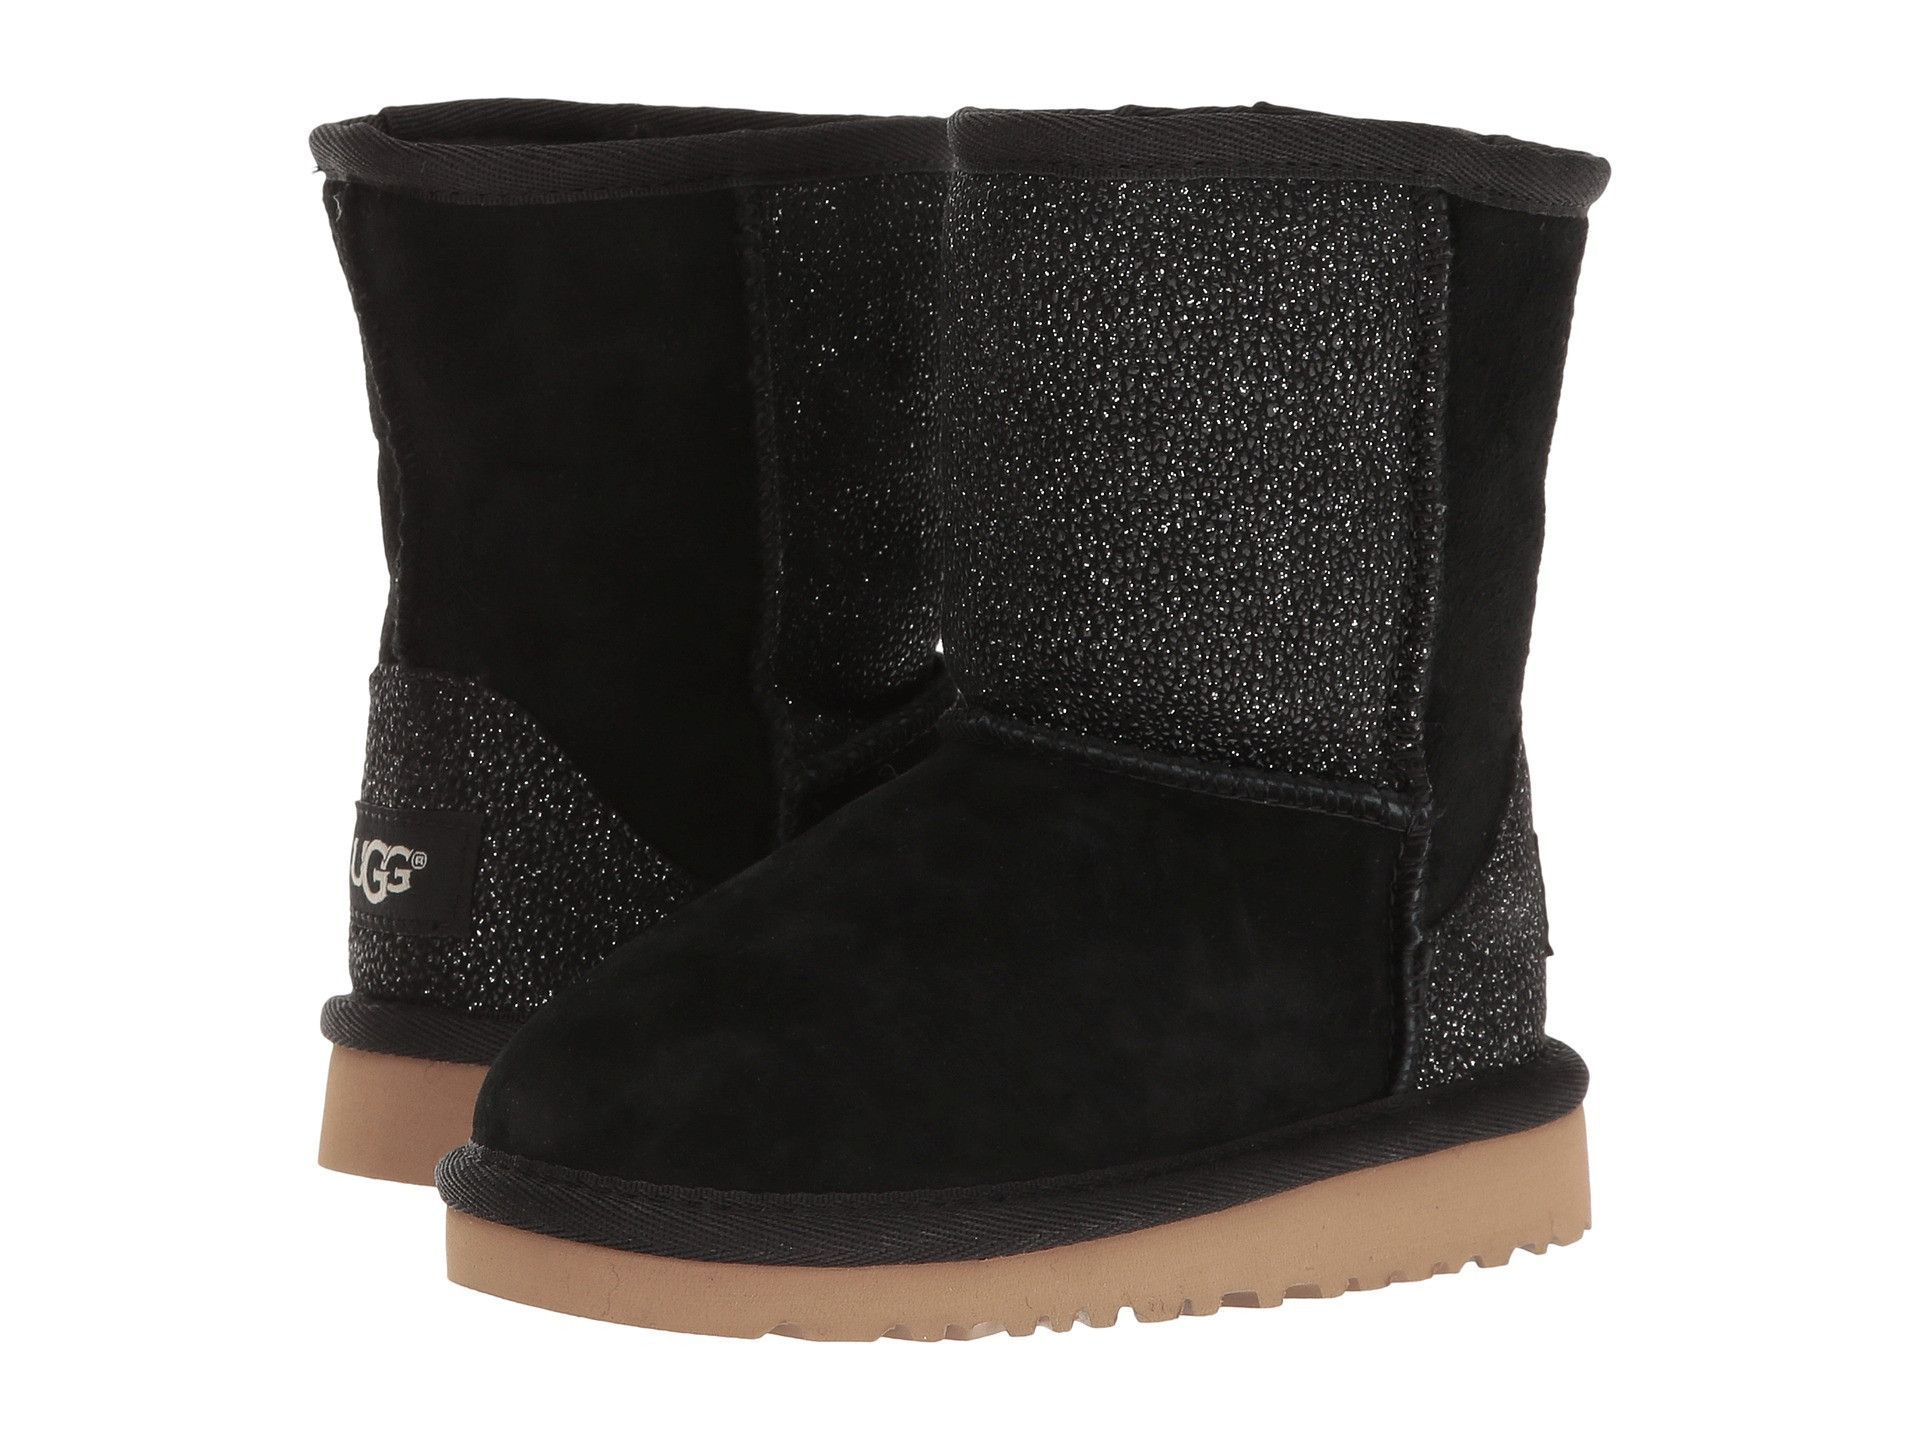 77e5a1663bf UGG Classic Short Serin Toddler | Black (1013259T) | Products | Ugg ...